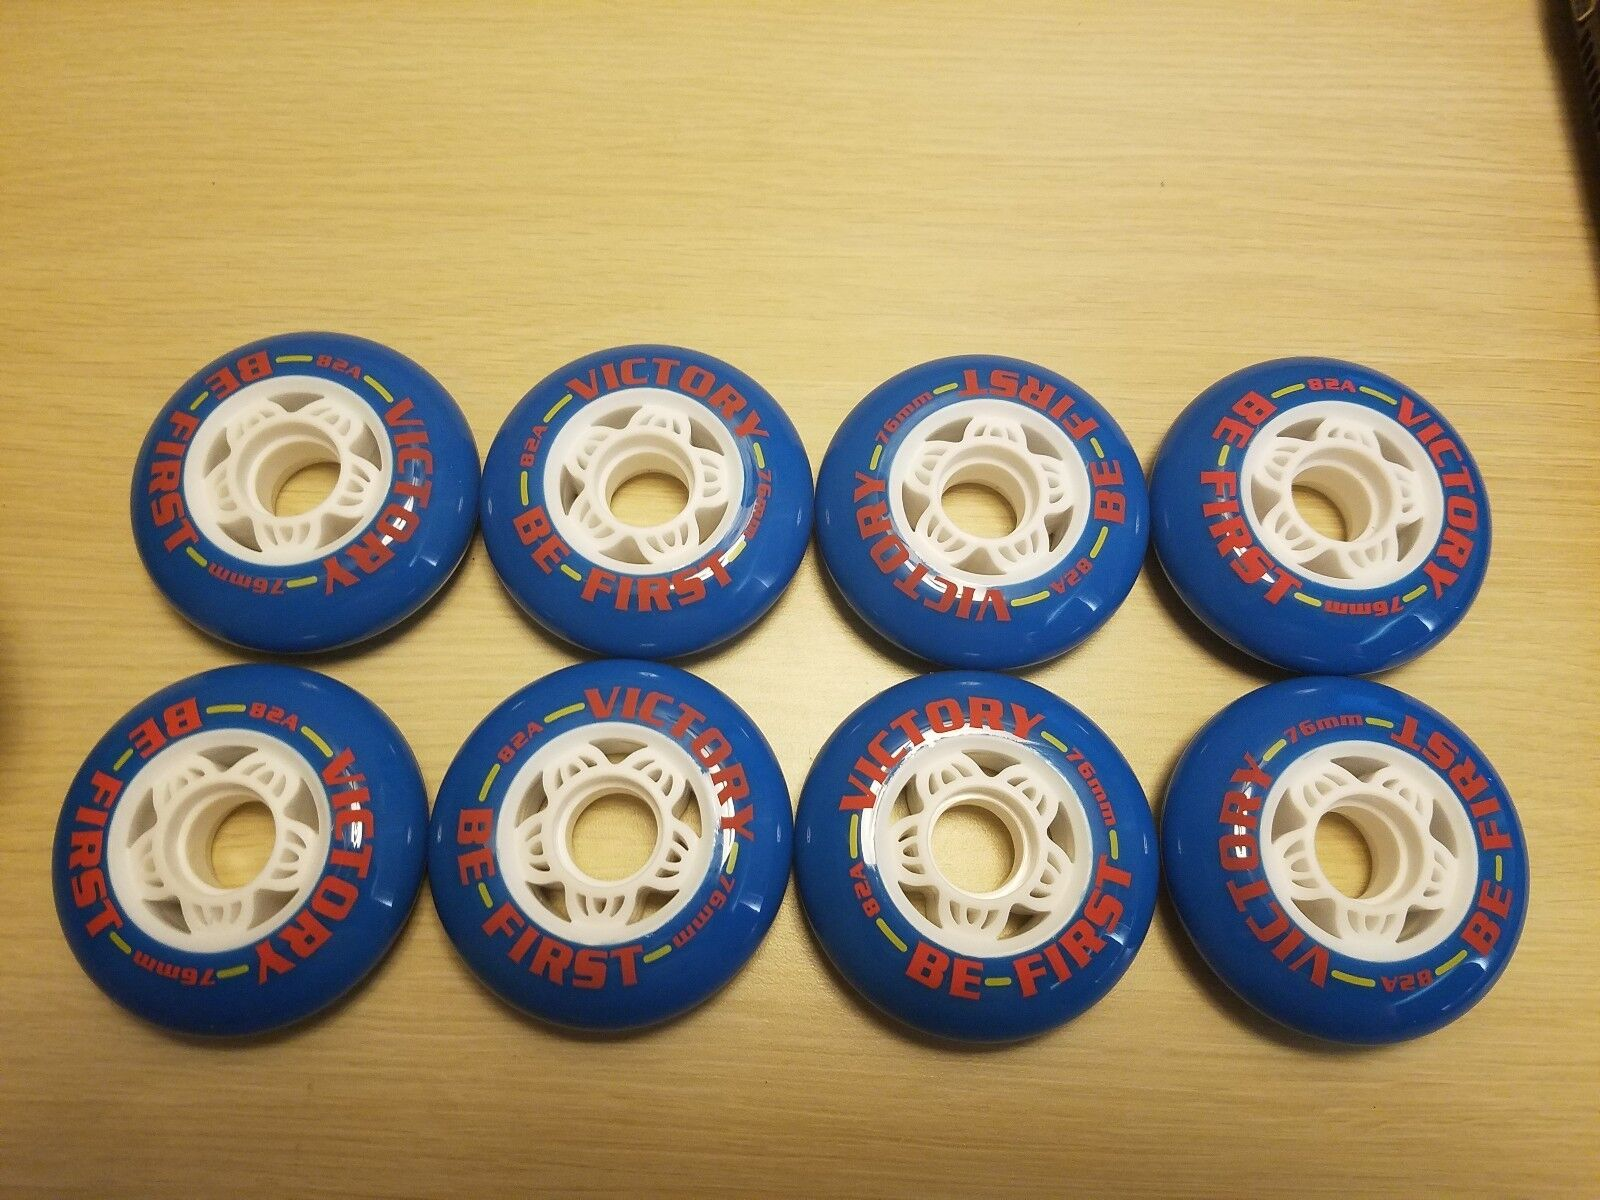 """BRAND NEW """"VICTORY BE FIRST"""" INLINE SKATES WHEELS SIZE 76mm 82A 8-PACK"""